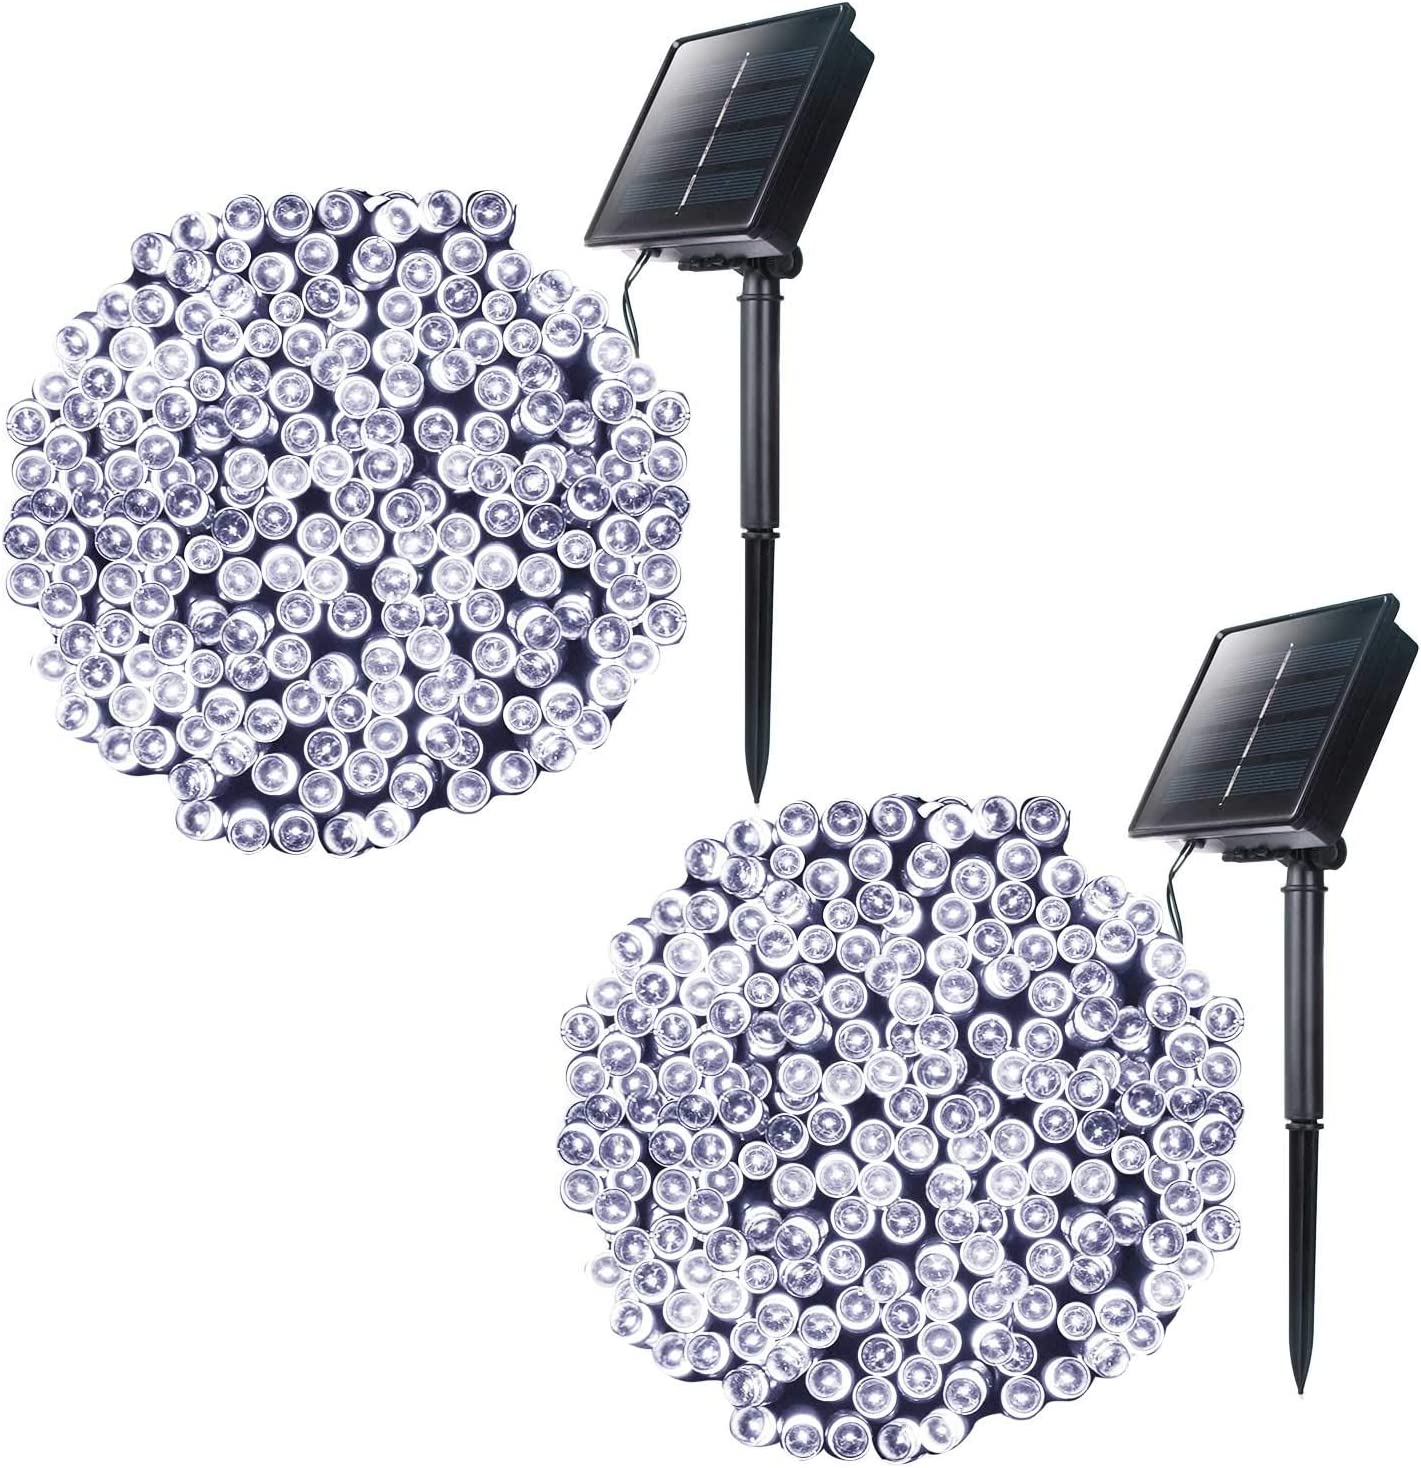 Outdoor Solar String Lights with 8 Lighting Modes, 72 Feet 200Led Waterproof Solar Powered Lights for Indoor Outside Xmas Patio Garden Yard Wedding Party Christmas Tent Tree Decor, Pure White, 2 Pack